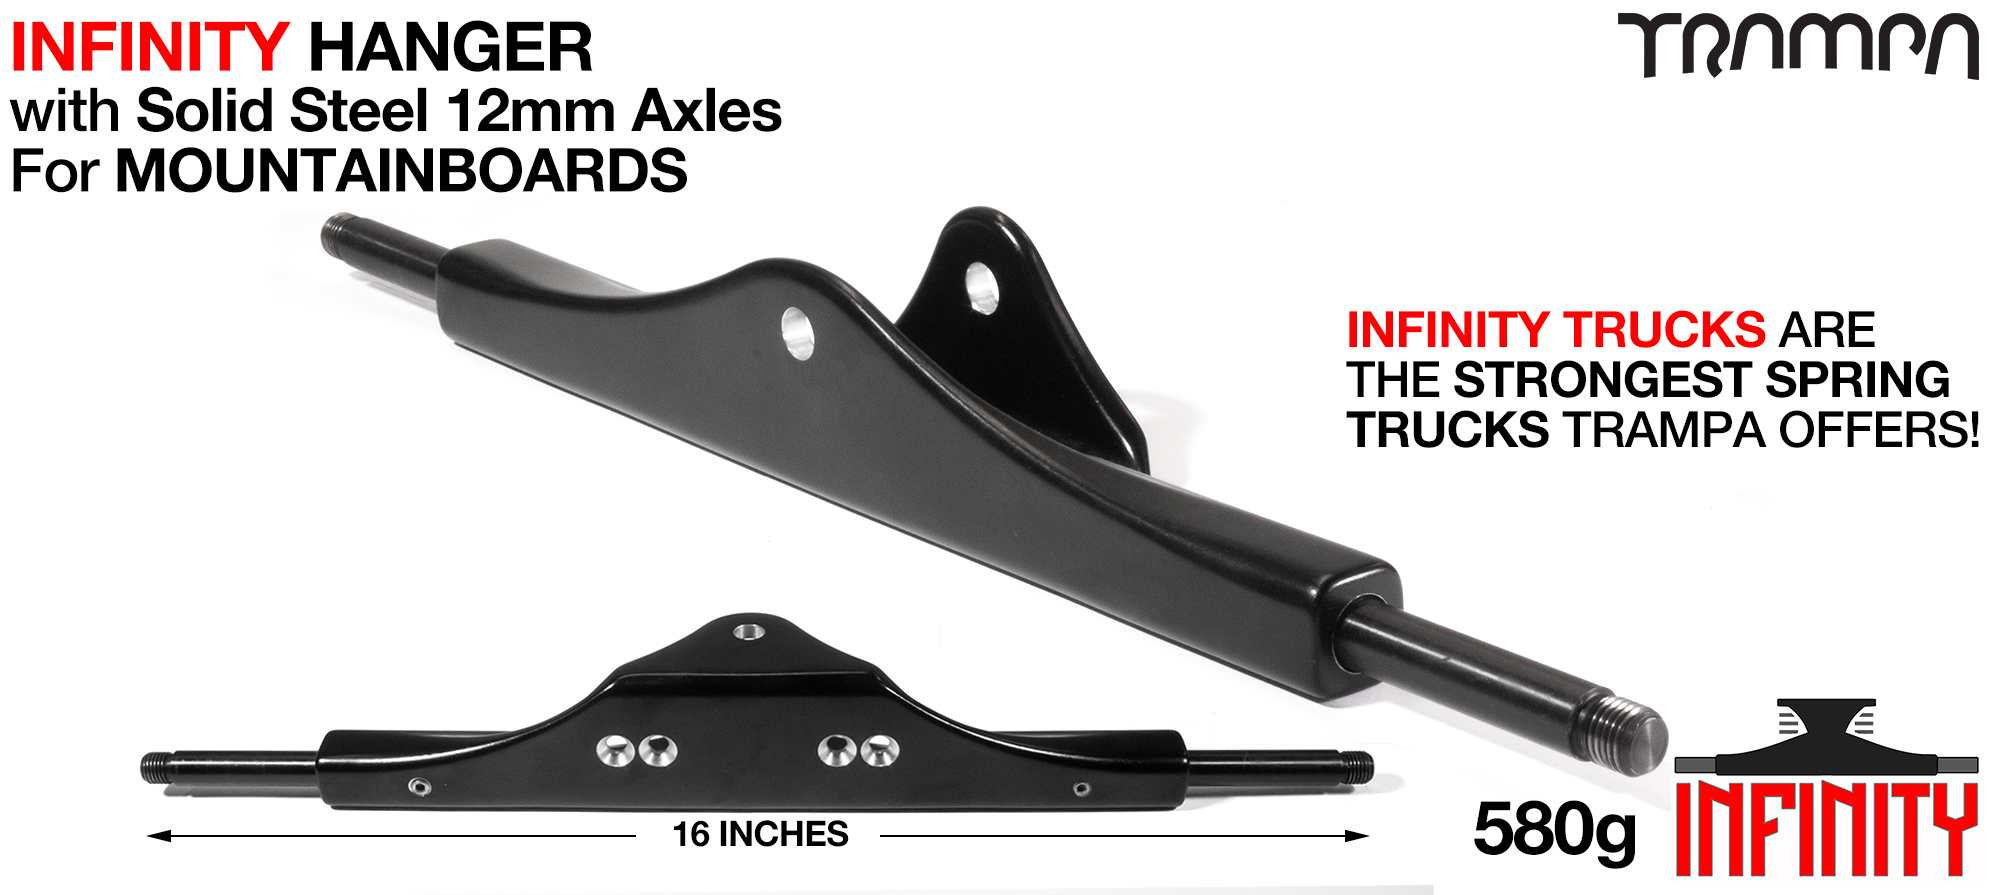 INFINITY ATB Hanger - 12mm SOLID Axles Powder coated Black & CNC'd Kingpin hole